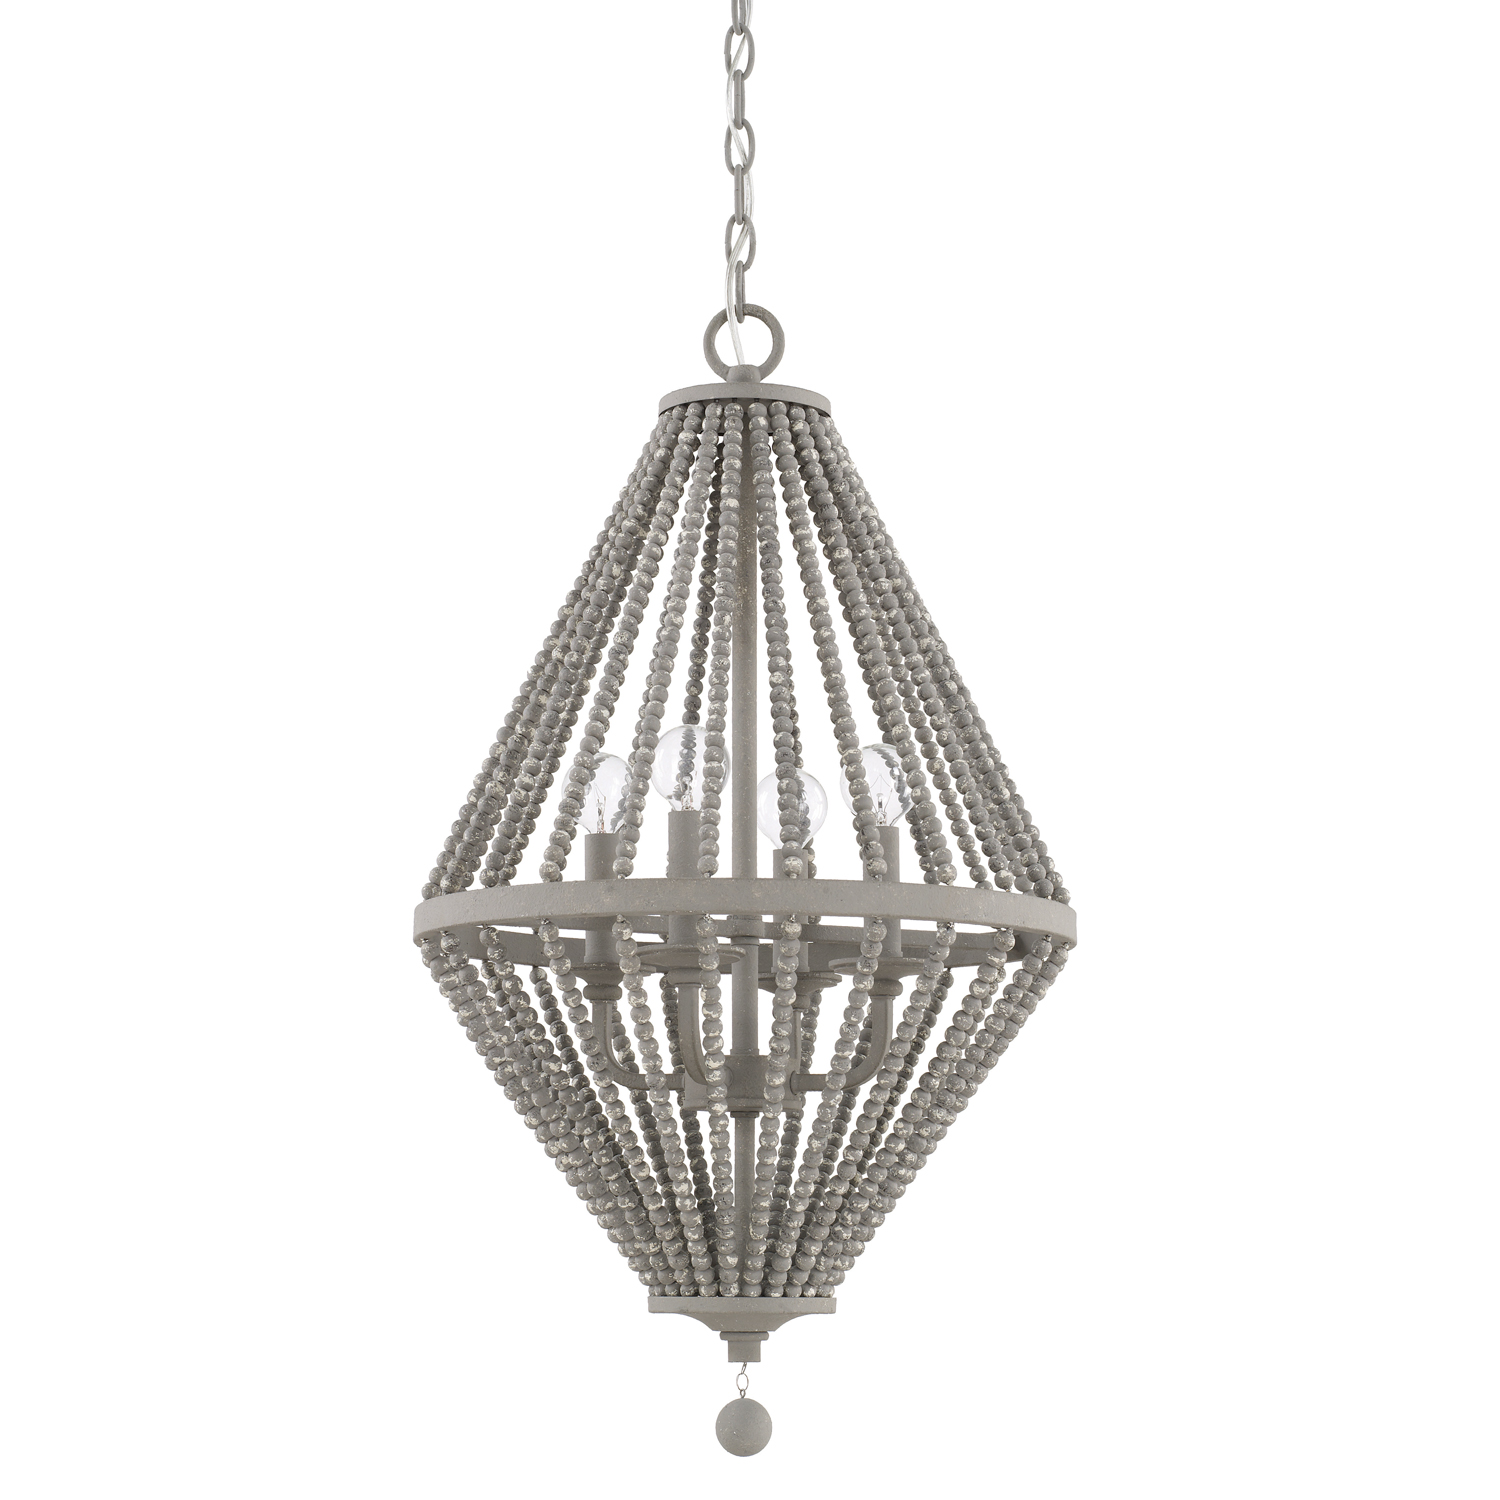 Kima beaded chandelier in paris gray